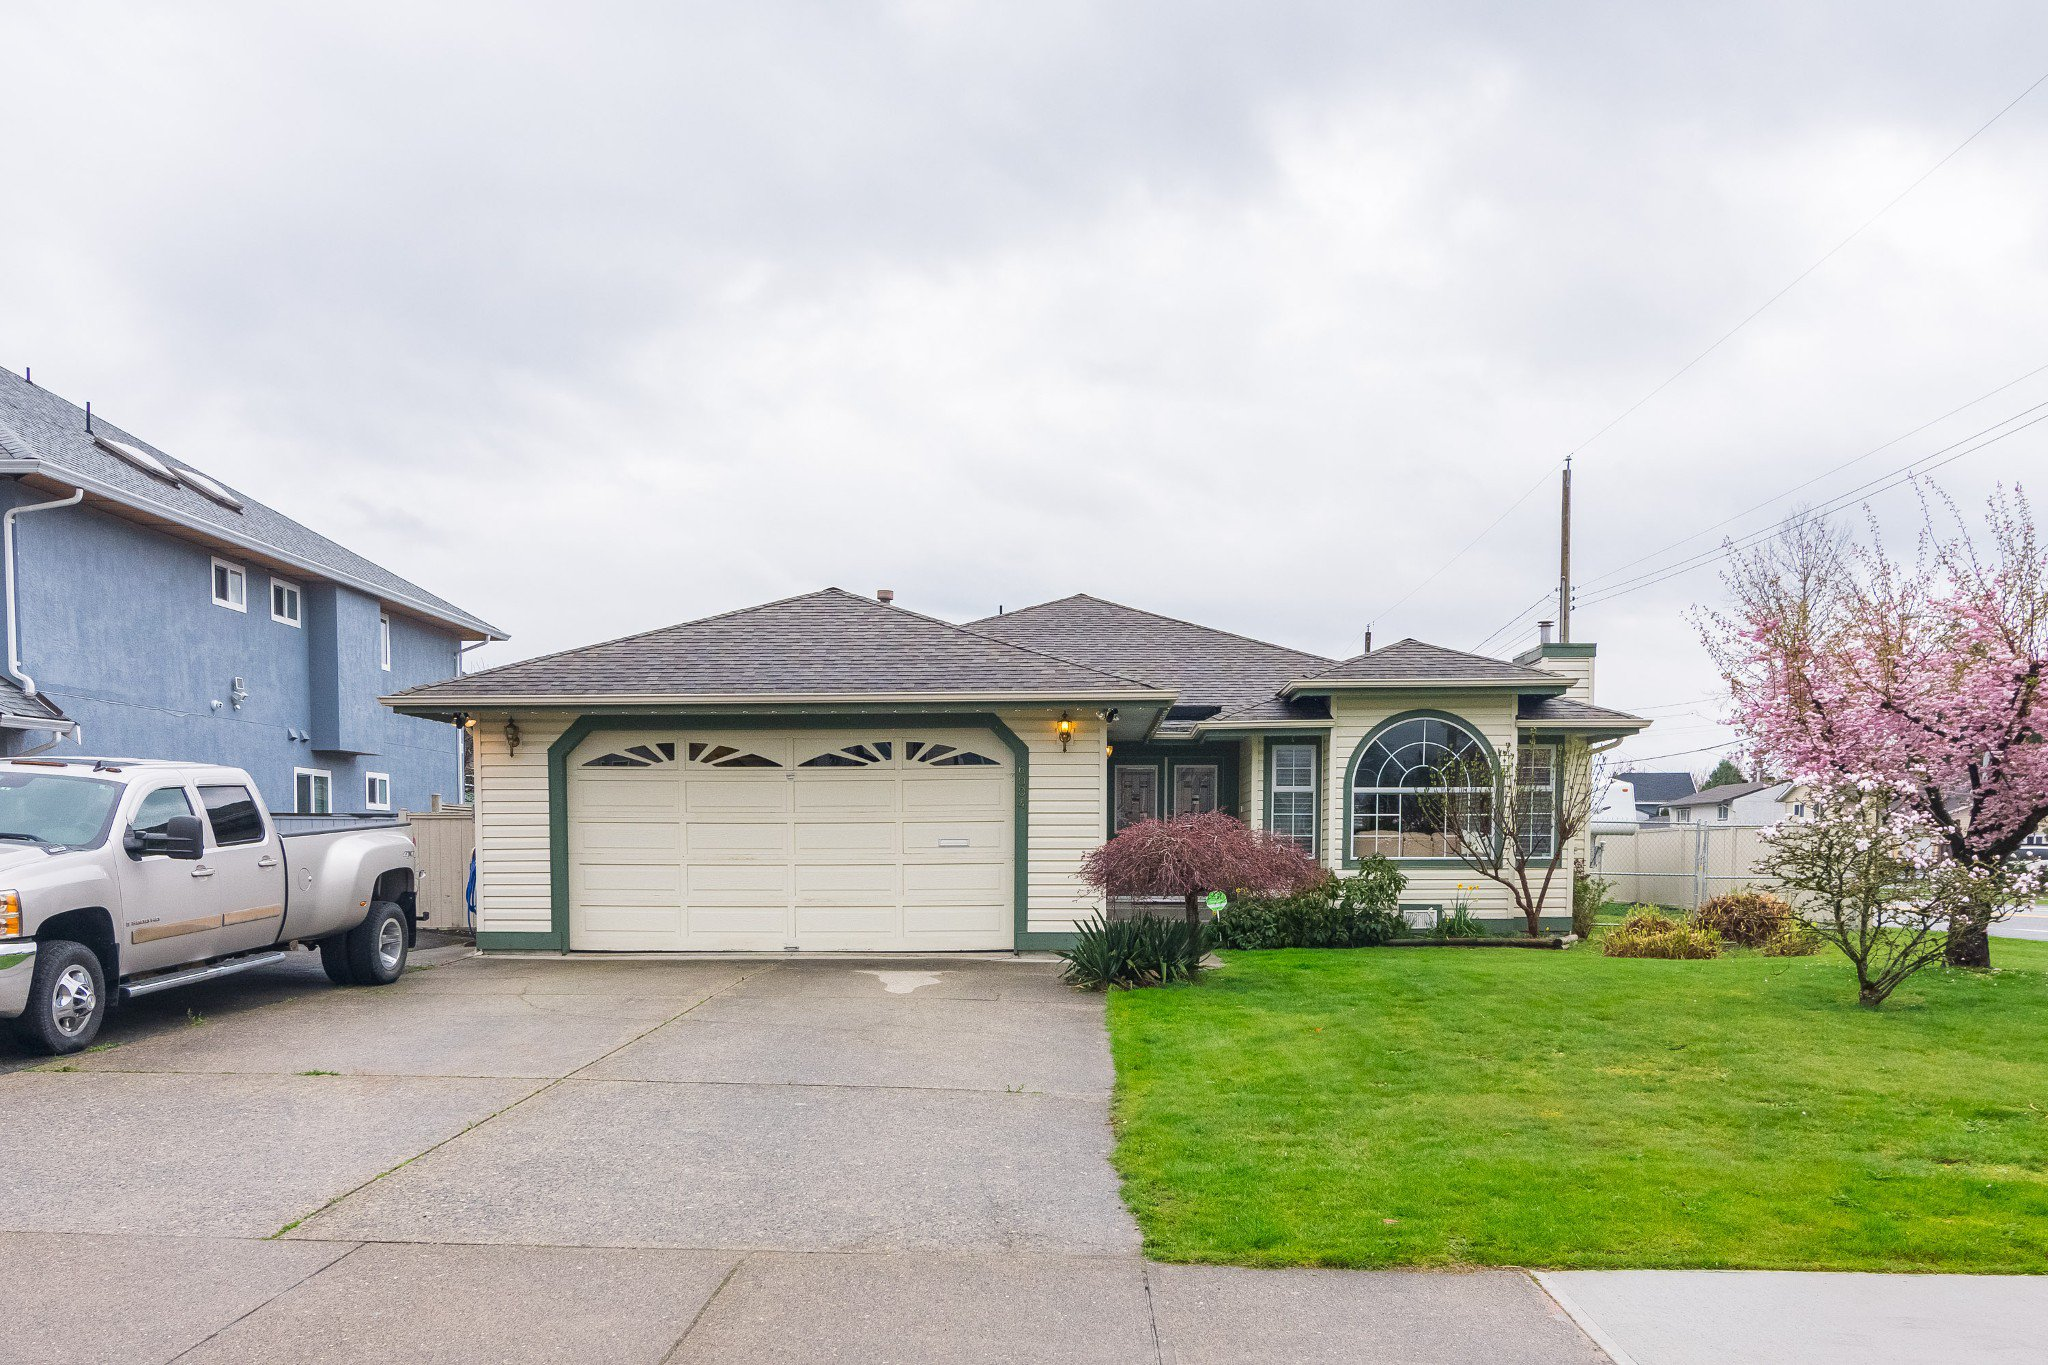 Welcome to 6004 - 170 St., Cloverdale! Enough space to park 8 vehicles on this wide driveway.